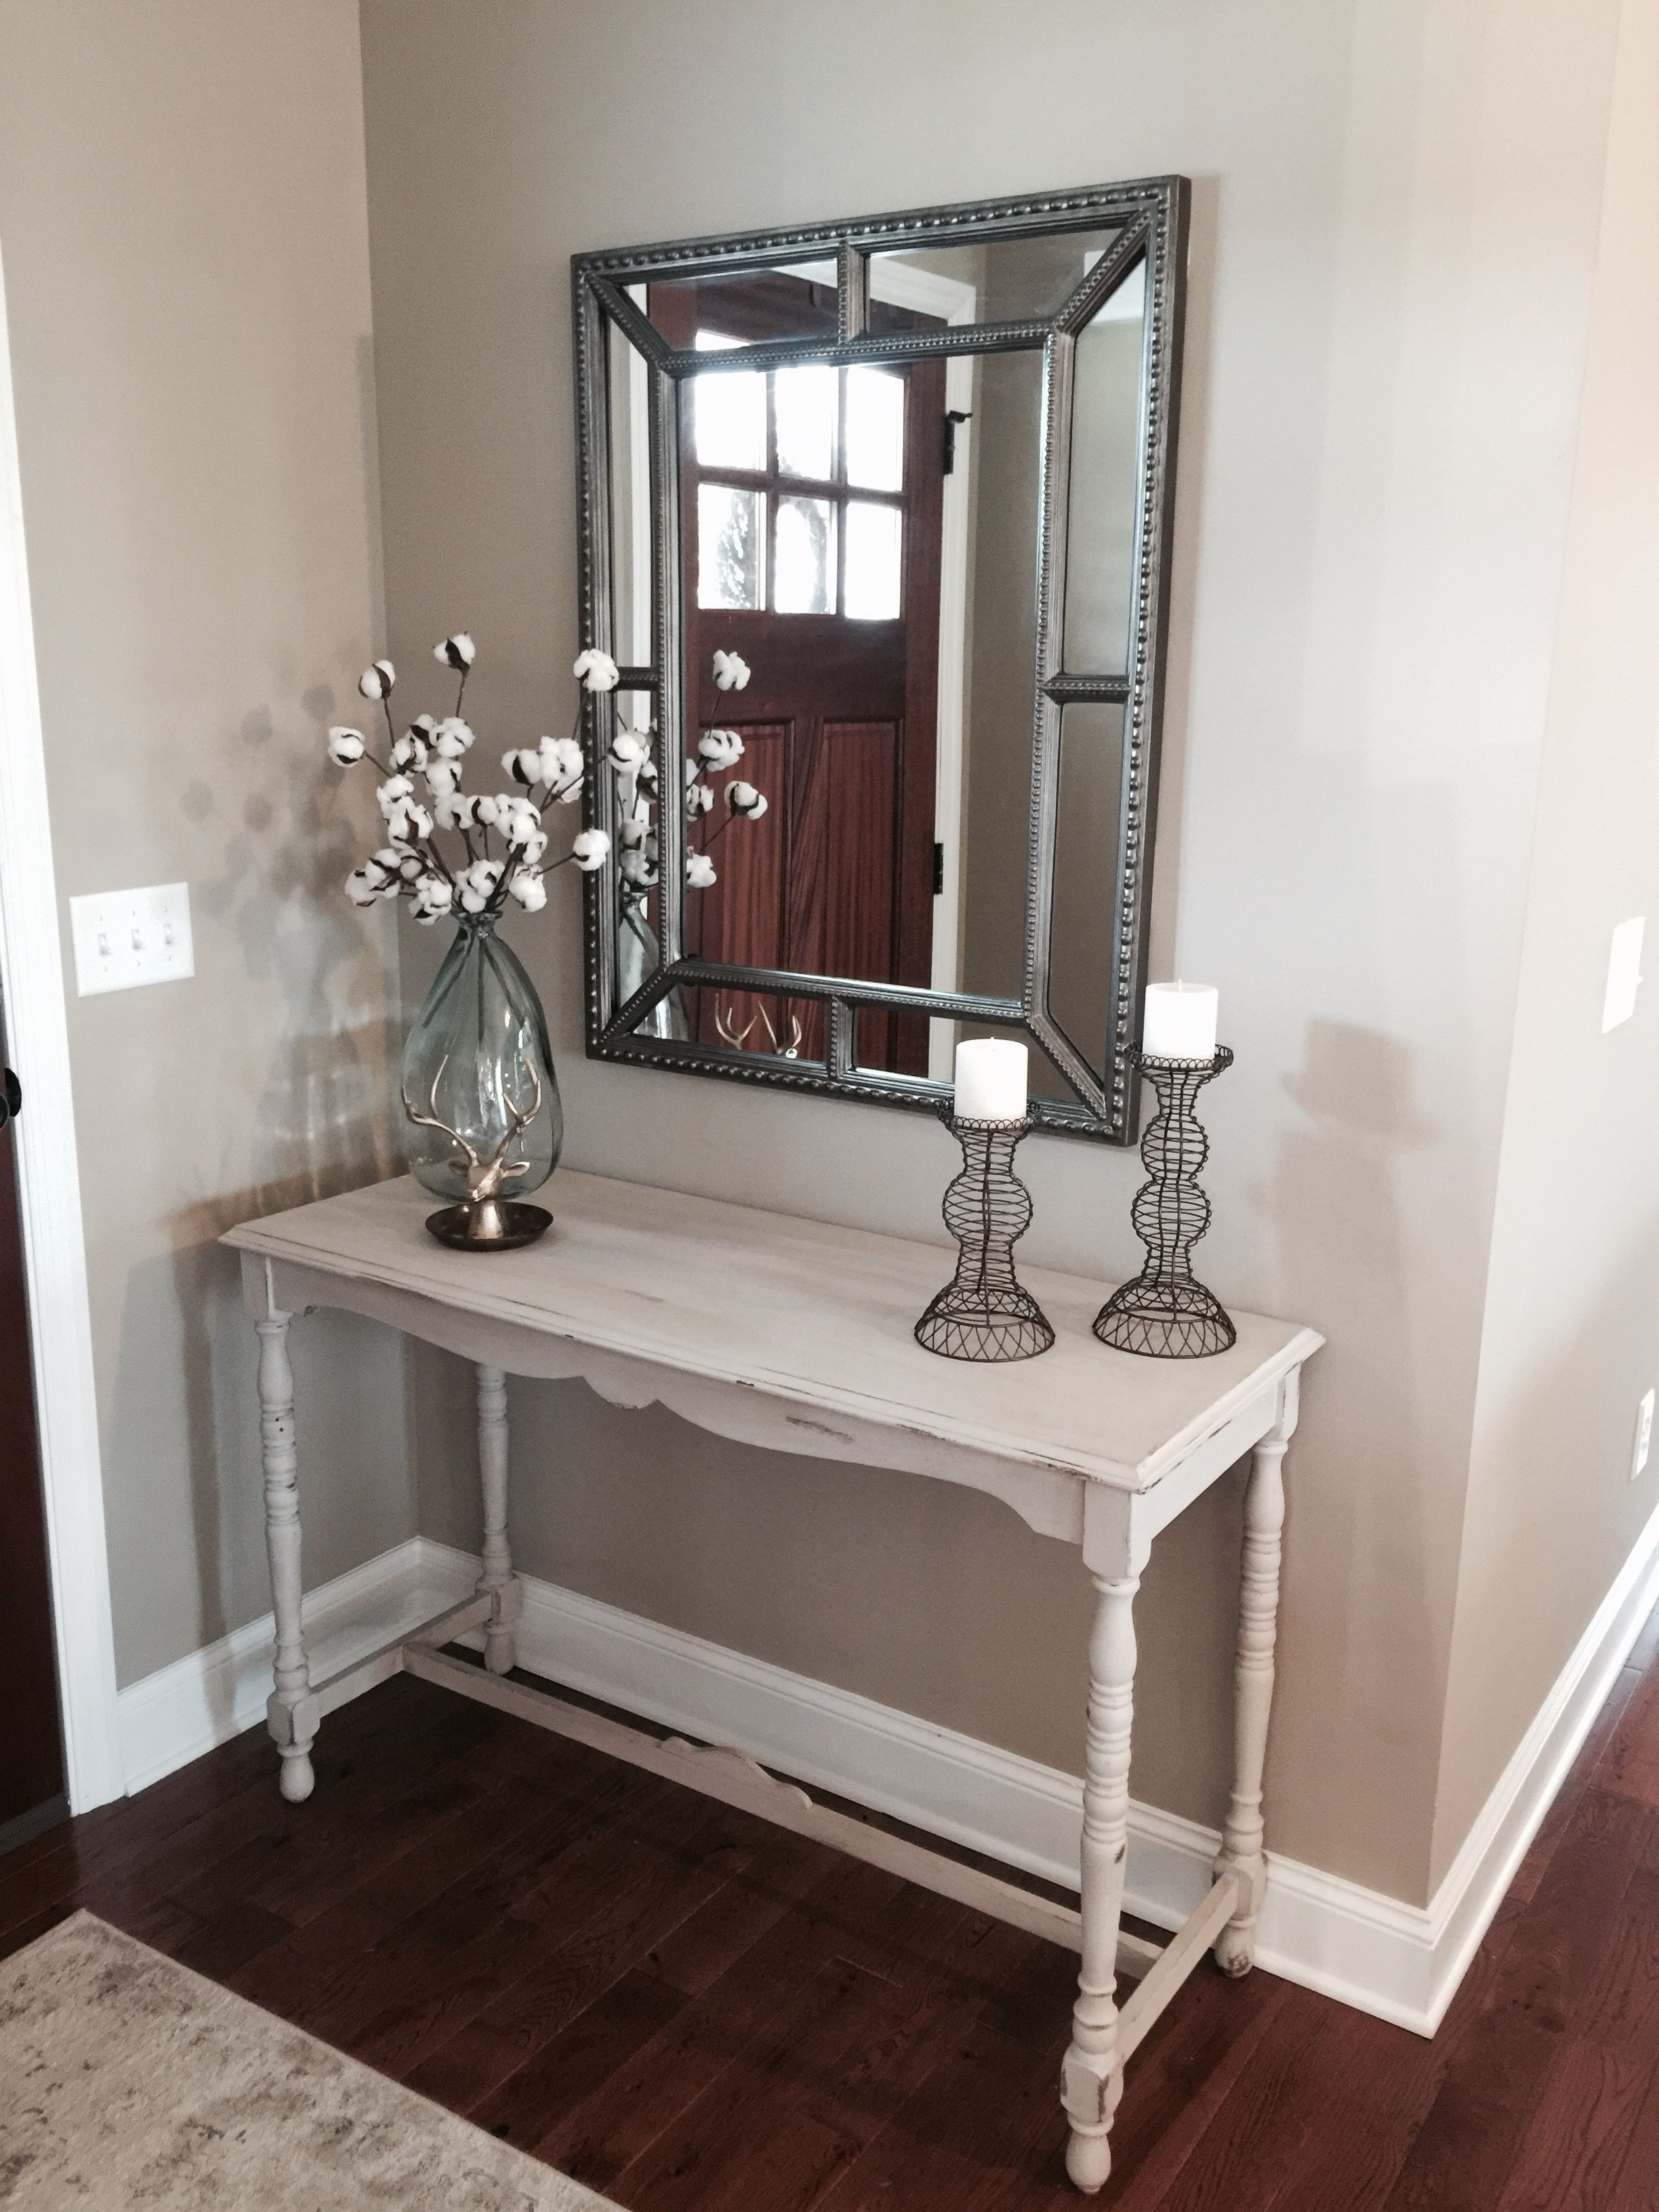 Restored Console Table, Decor From World Market, And Mirror From Hobby Lobby .